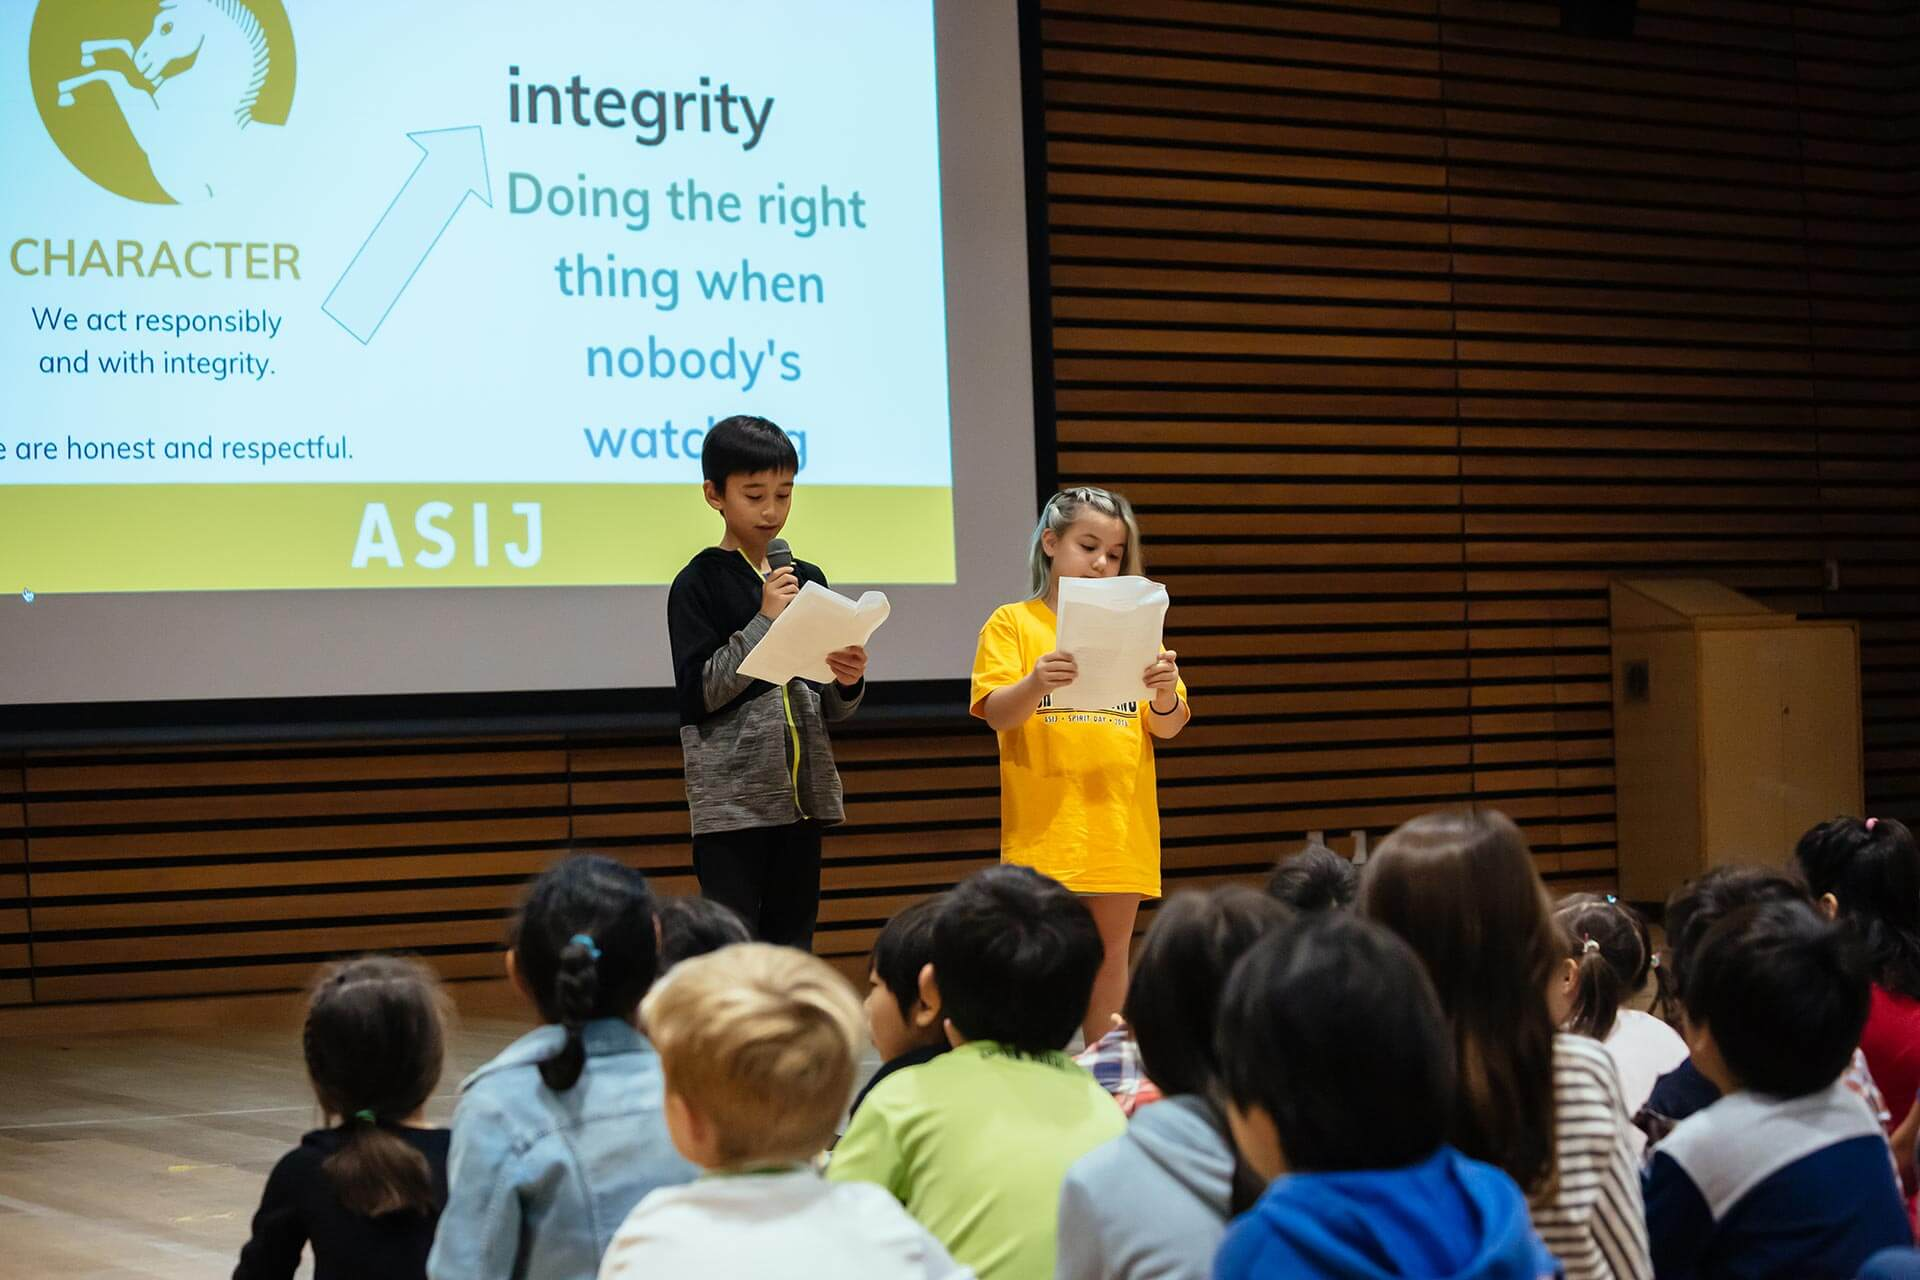 Two Elementary School Students Present at an ES Gathering